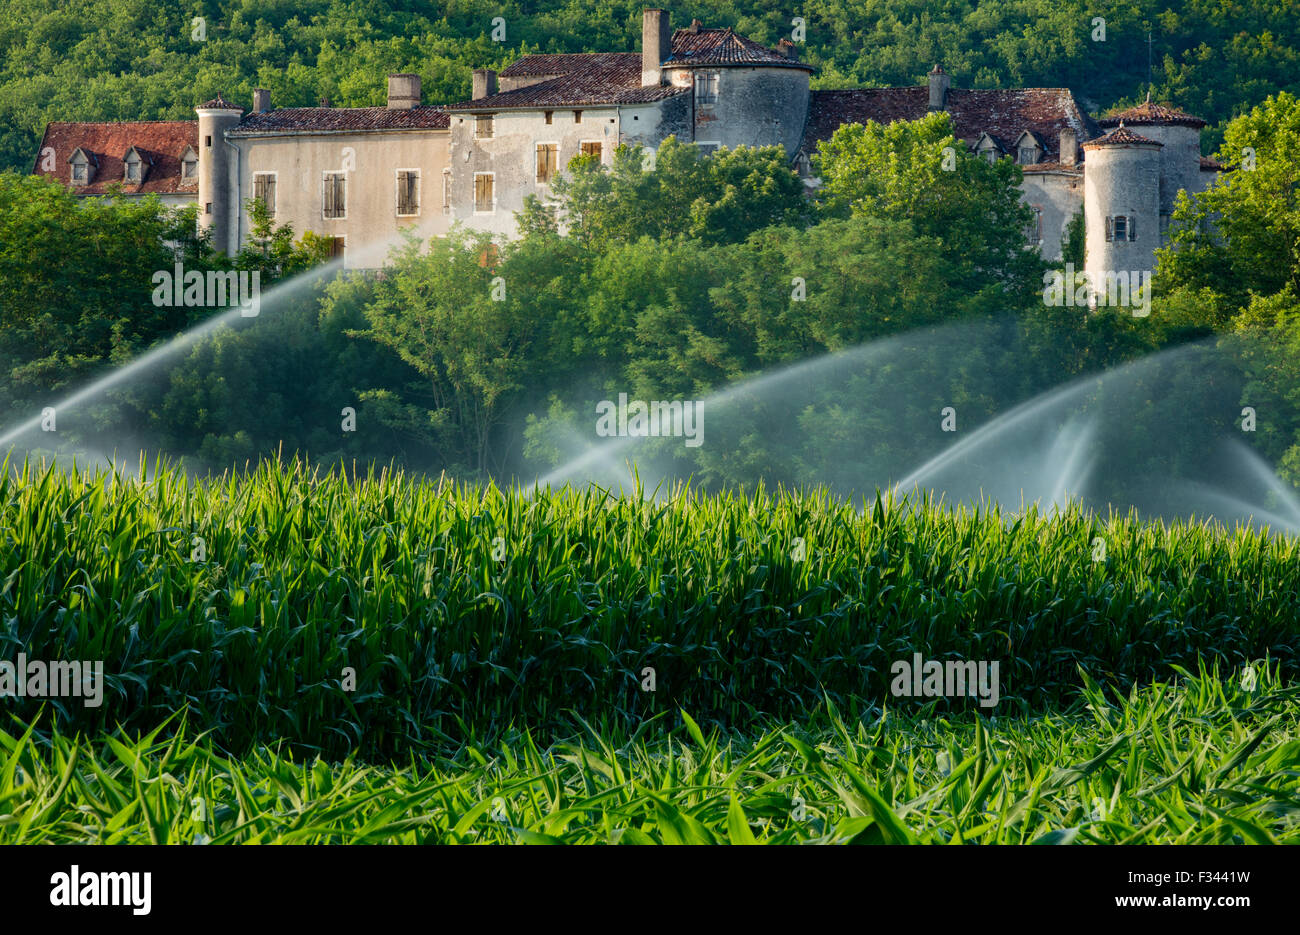 Chateau Arcambal, nr Cahors, Lot Valley, Quercy, France - Stock Image